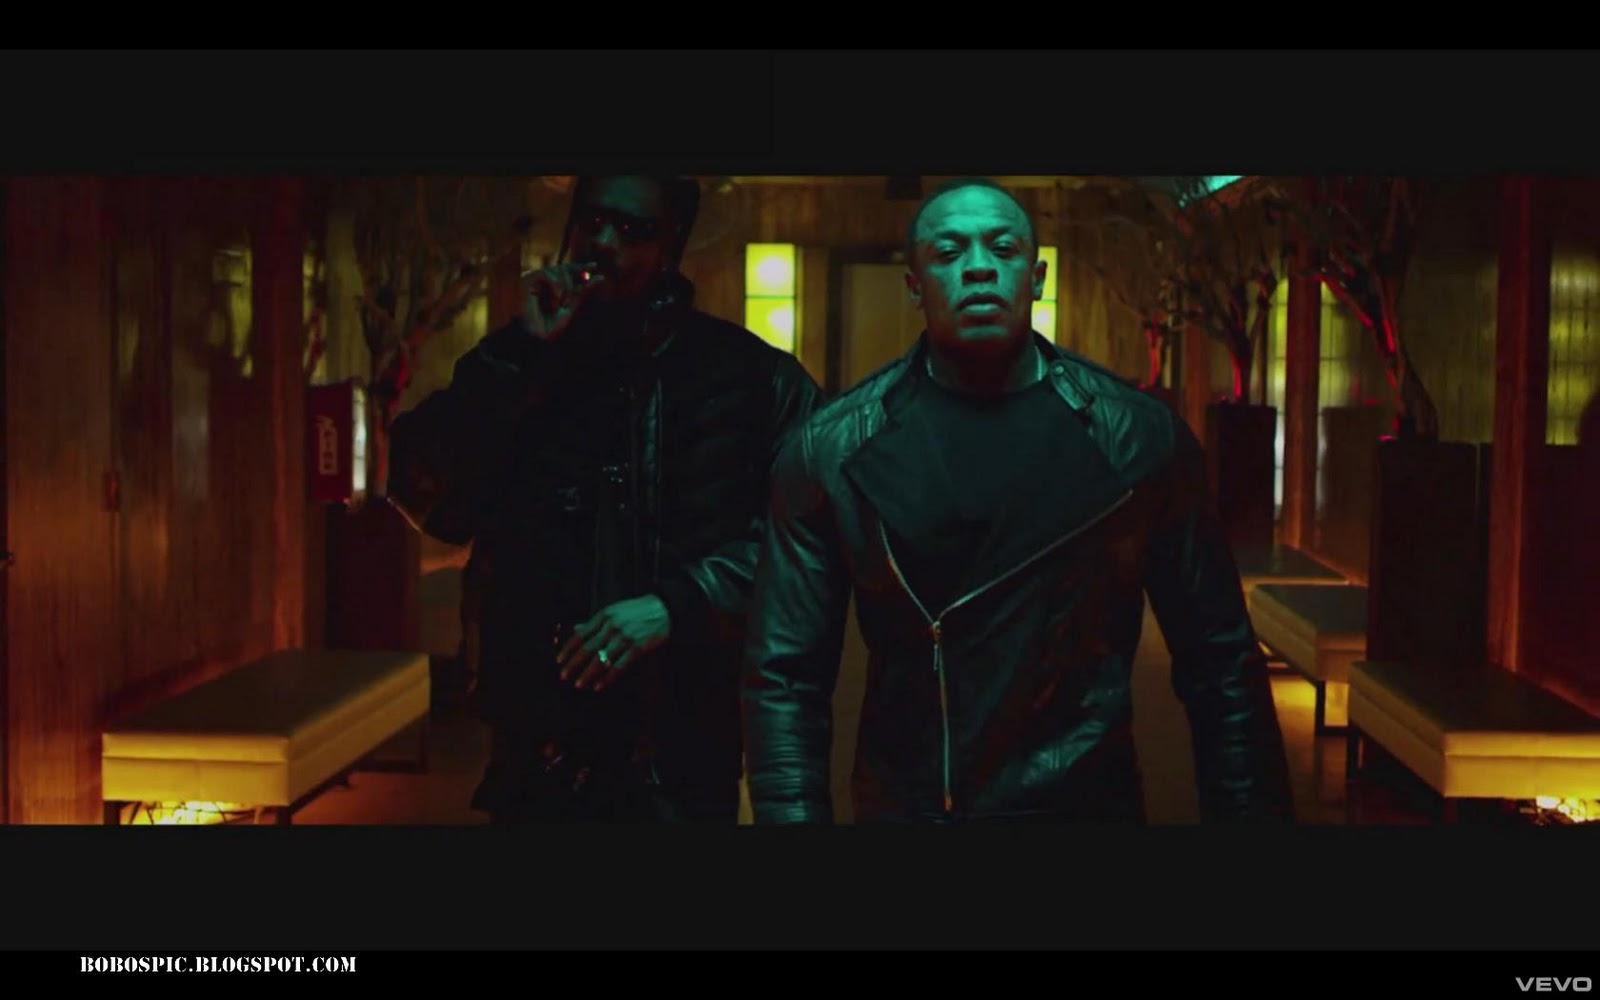 Music Video Pics: Dr. Dre - Kush ft. Snoop Dogg, Akon video pictures bet365 indien